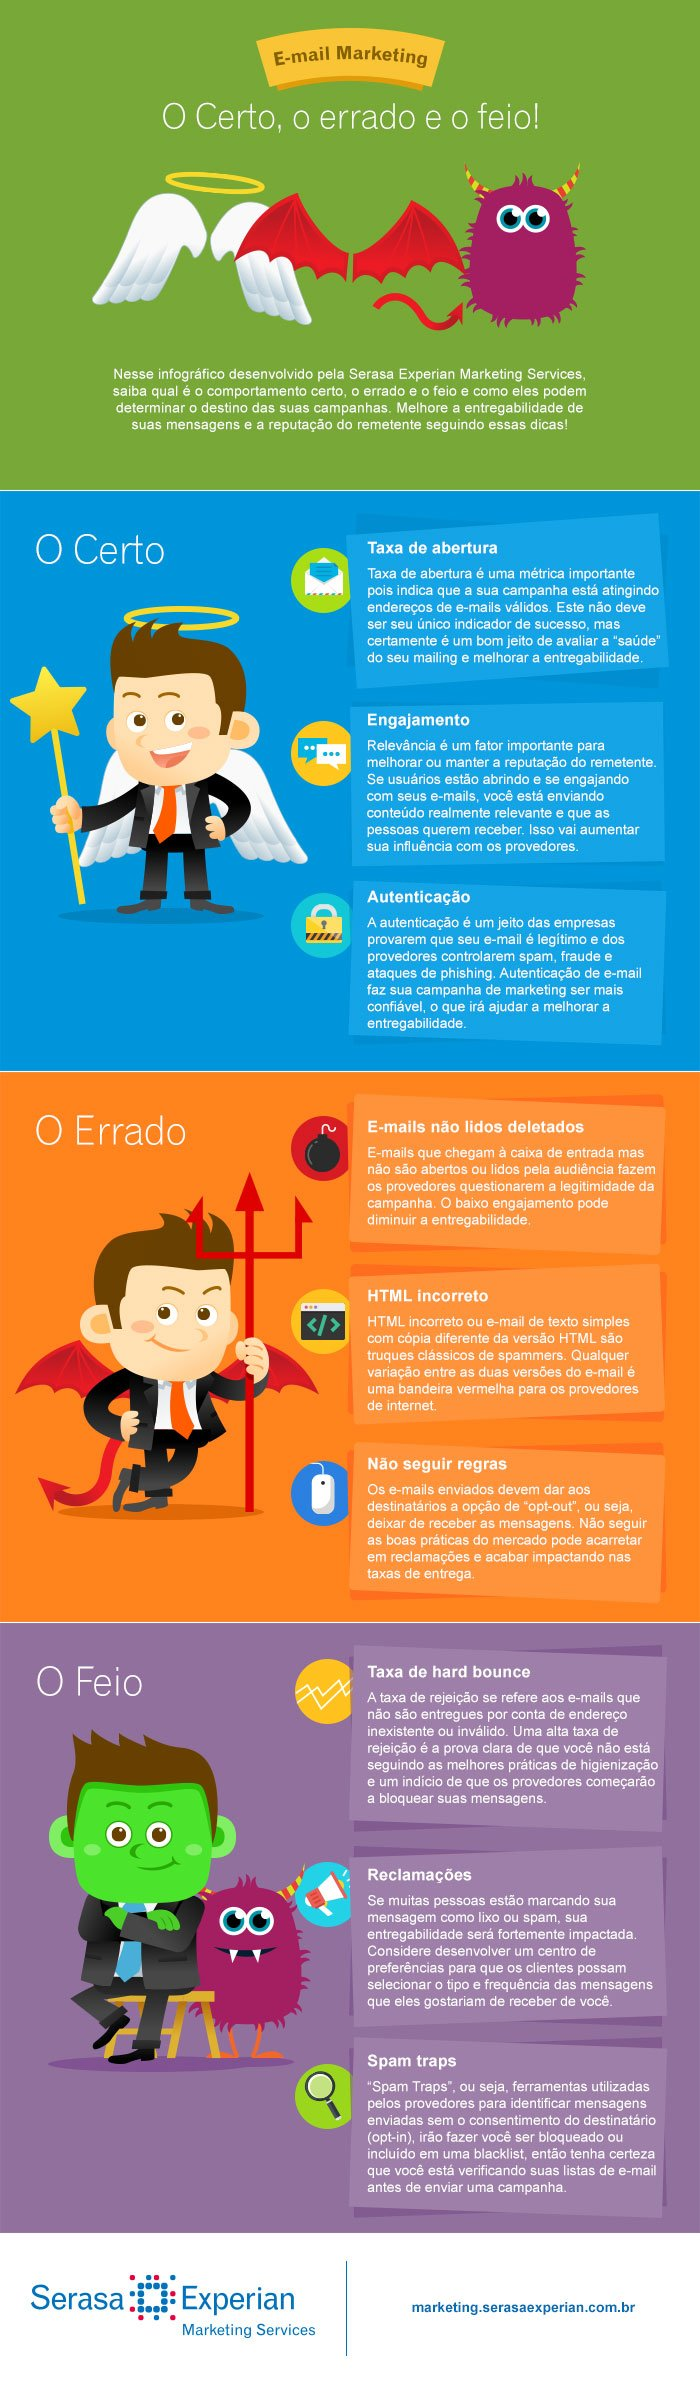 boas-praticas-email-marketing